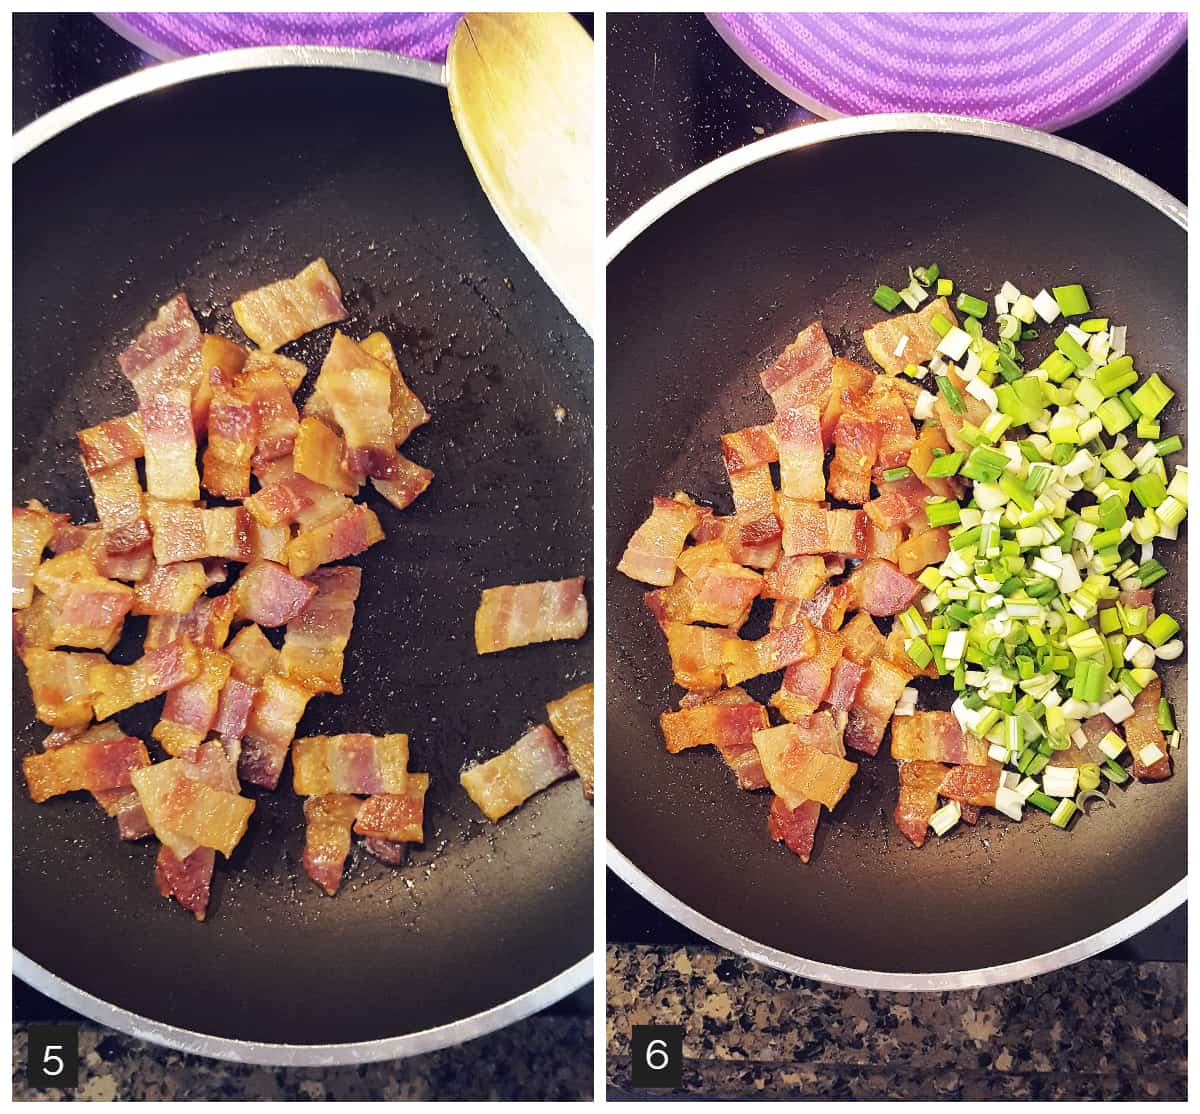 Left: bacon in a skillet; Right: bacon and green onions in a skillet.